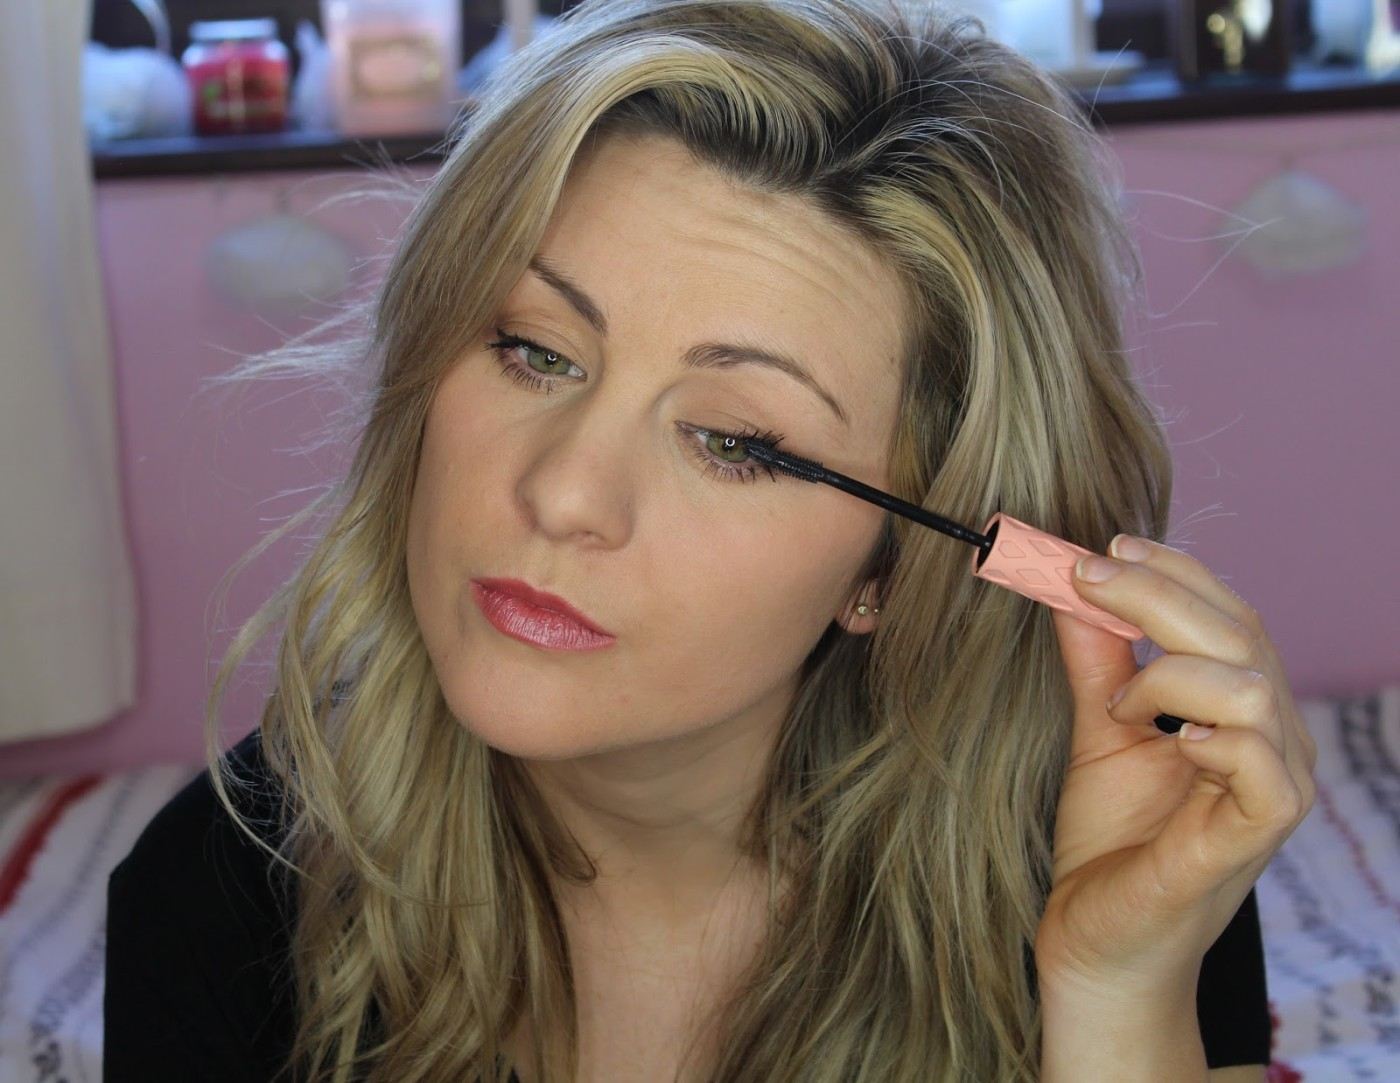 benefit roller lash, benefit roller lash review, benefit, through chelsea's eyes,